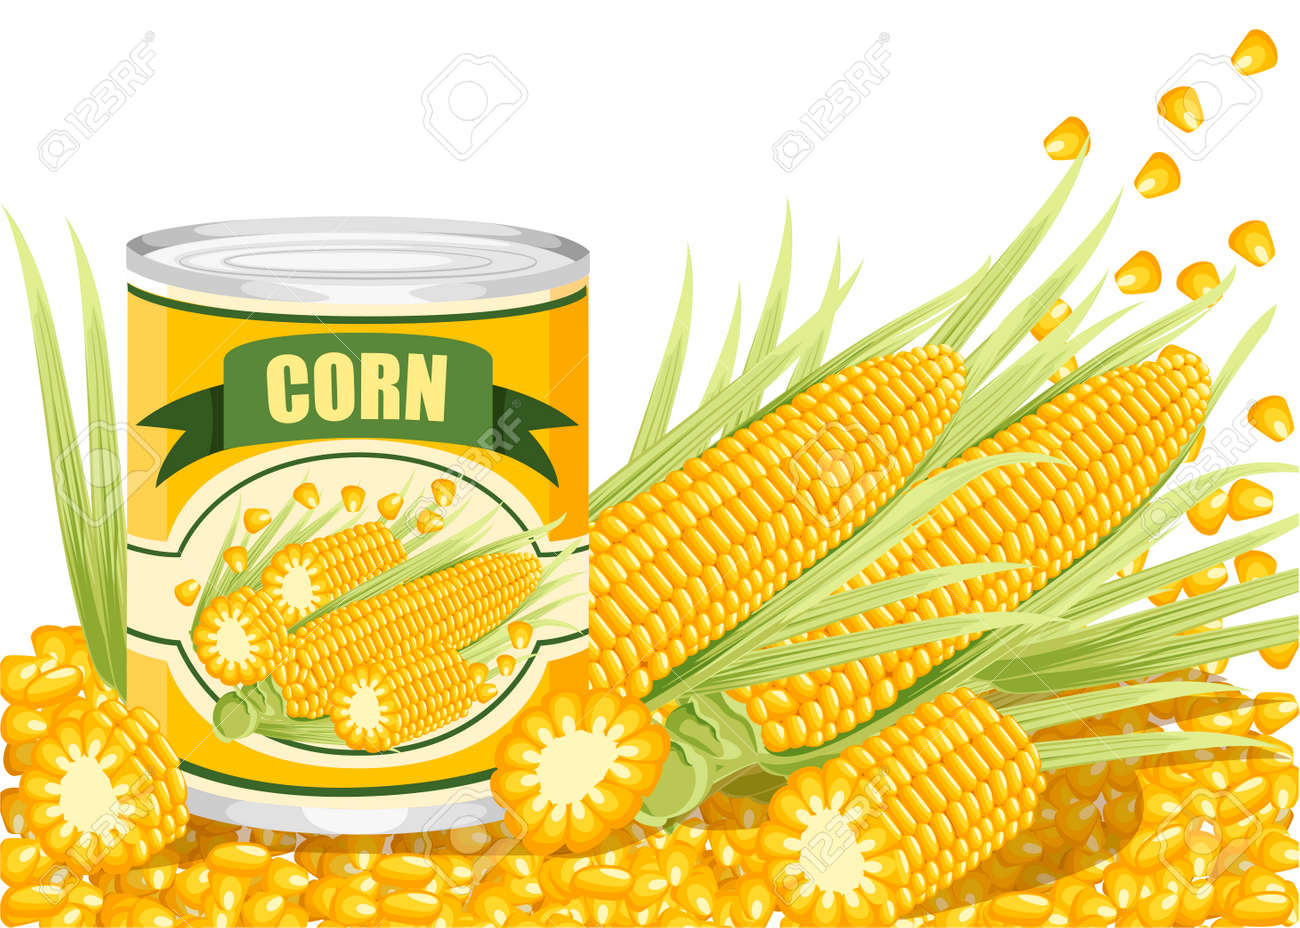 Corn in aluminum can. Canned sweet corn with corn cob logo. Product for supermarket and shop. Flat vector illustration on white background. - 125842053